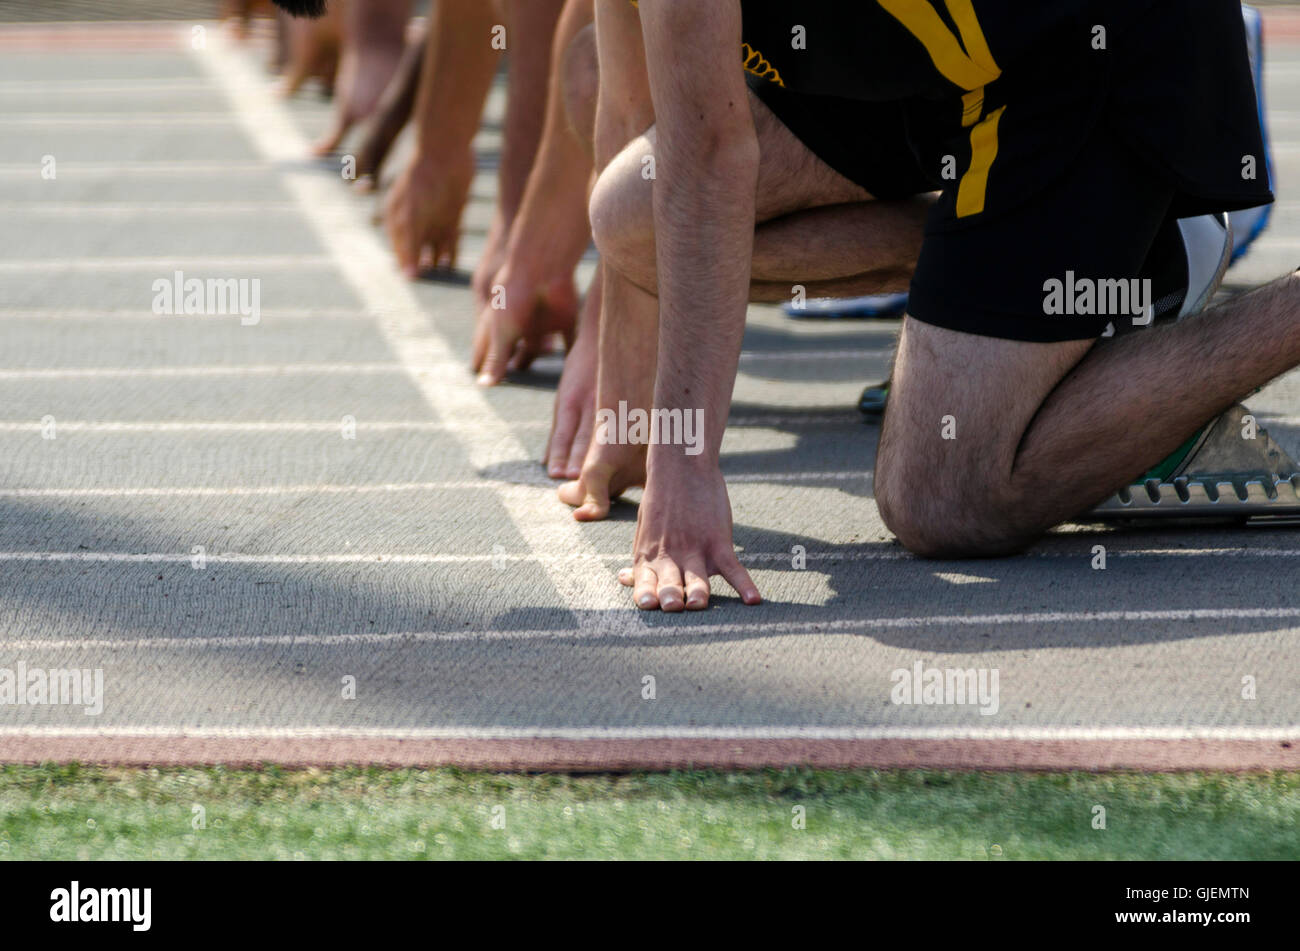 Runners getting ready to start race - Stock Image